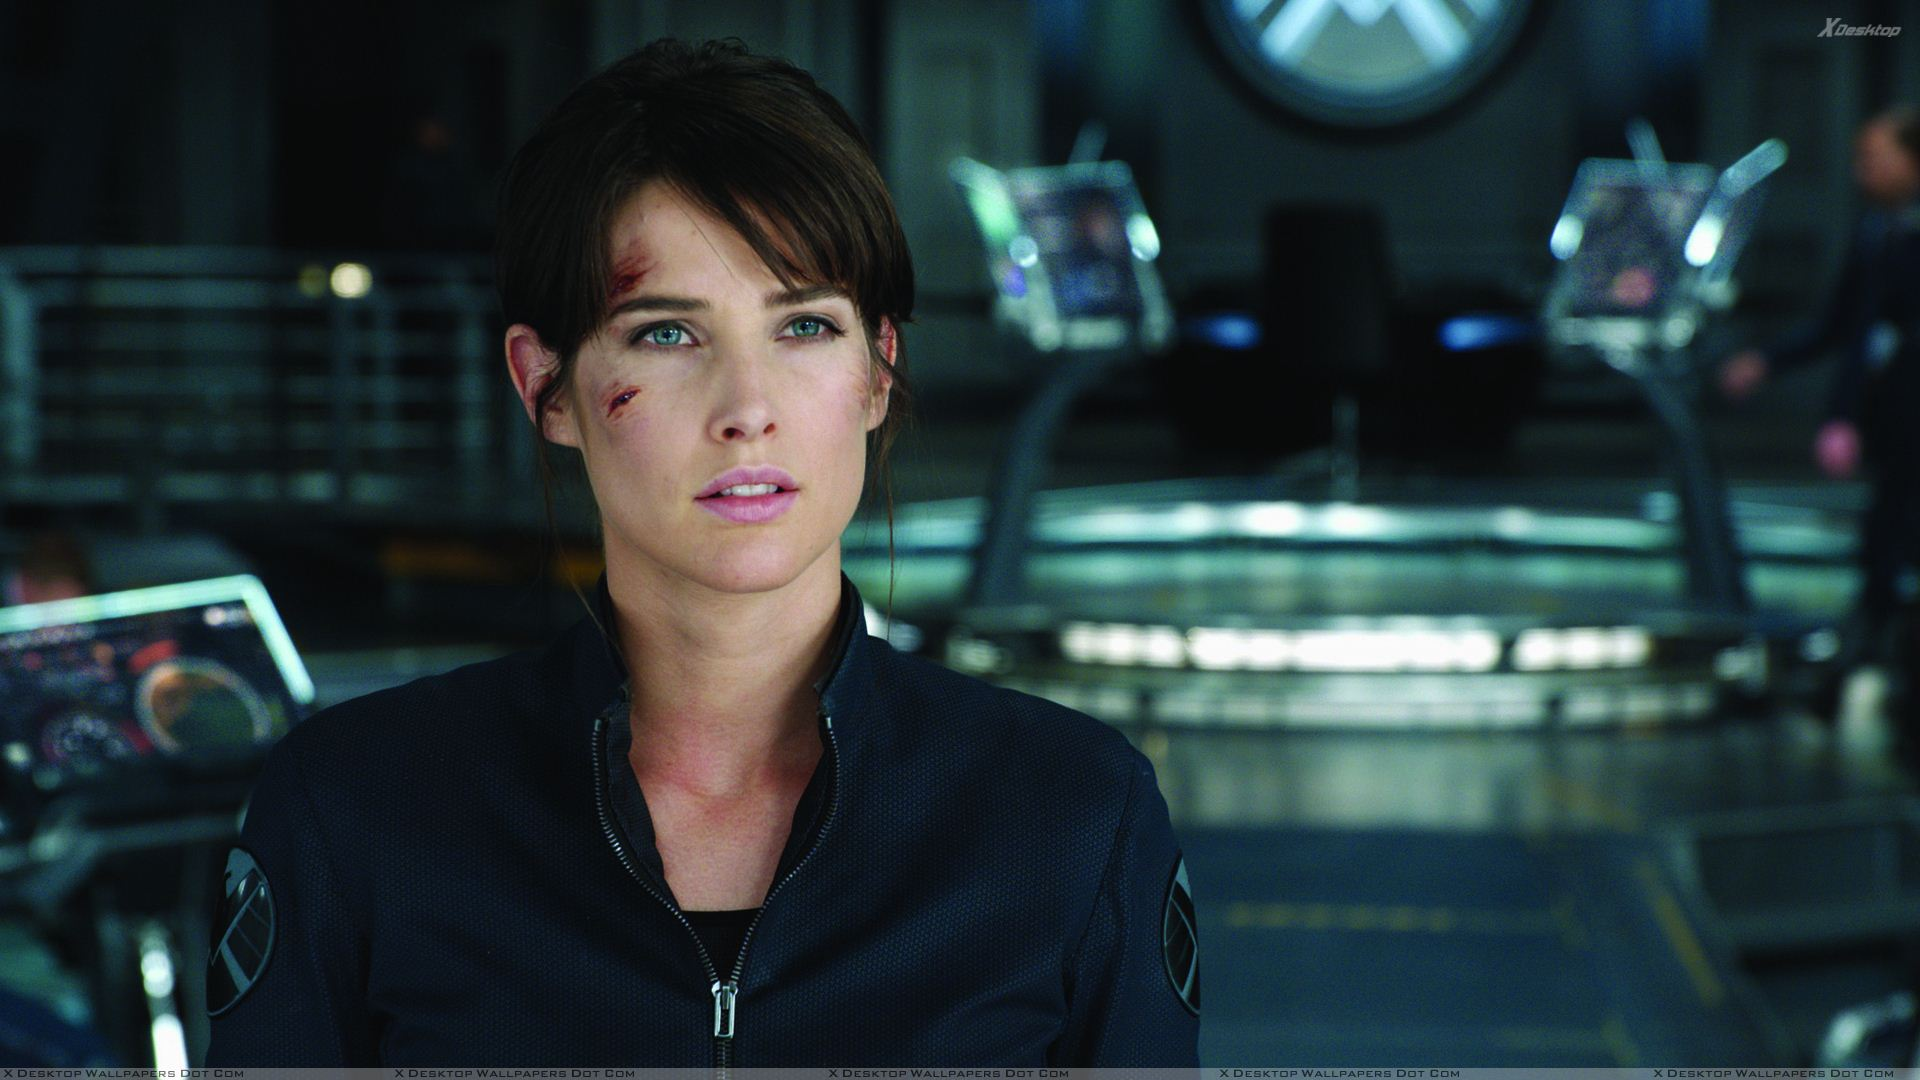 1920x1080 - Cobie Smulders Wallpapers 6